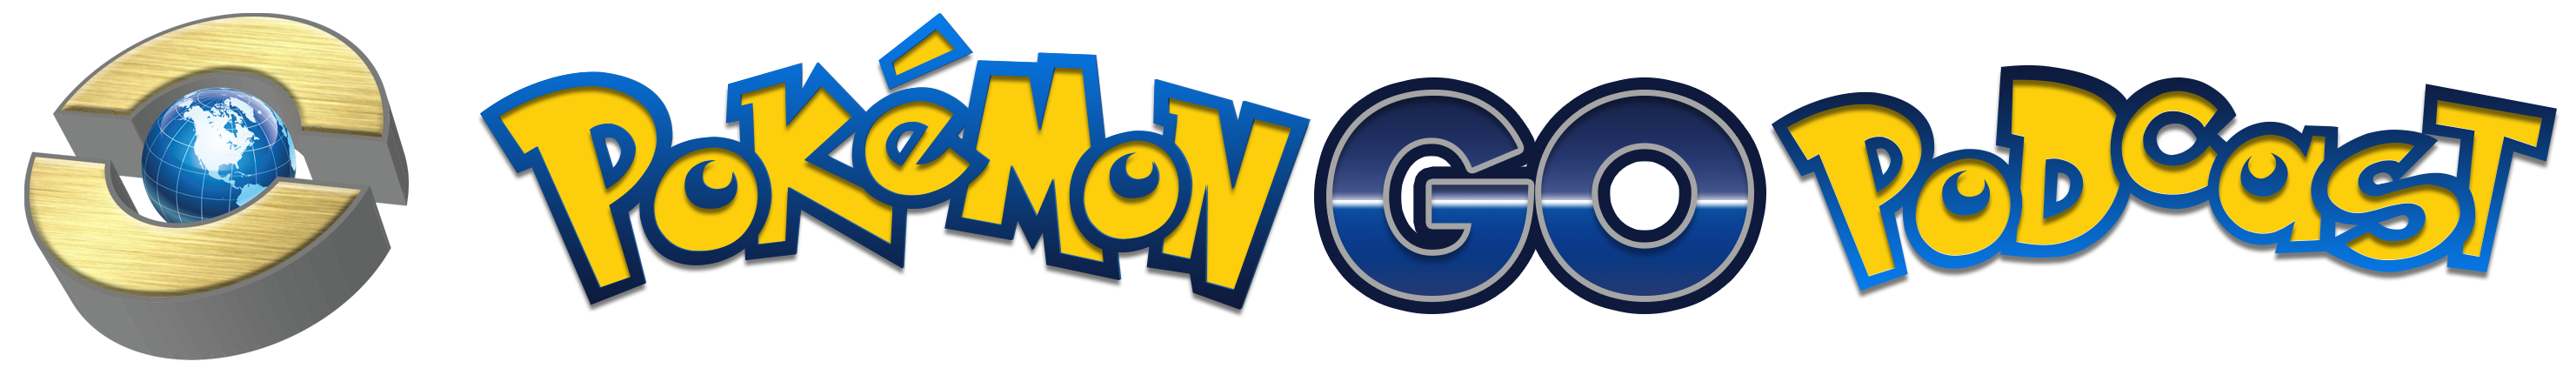 pokemon go podcast png logo #3163